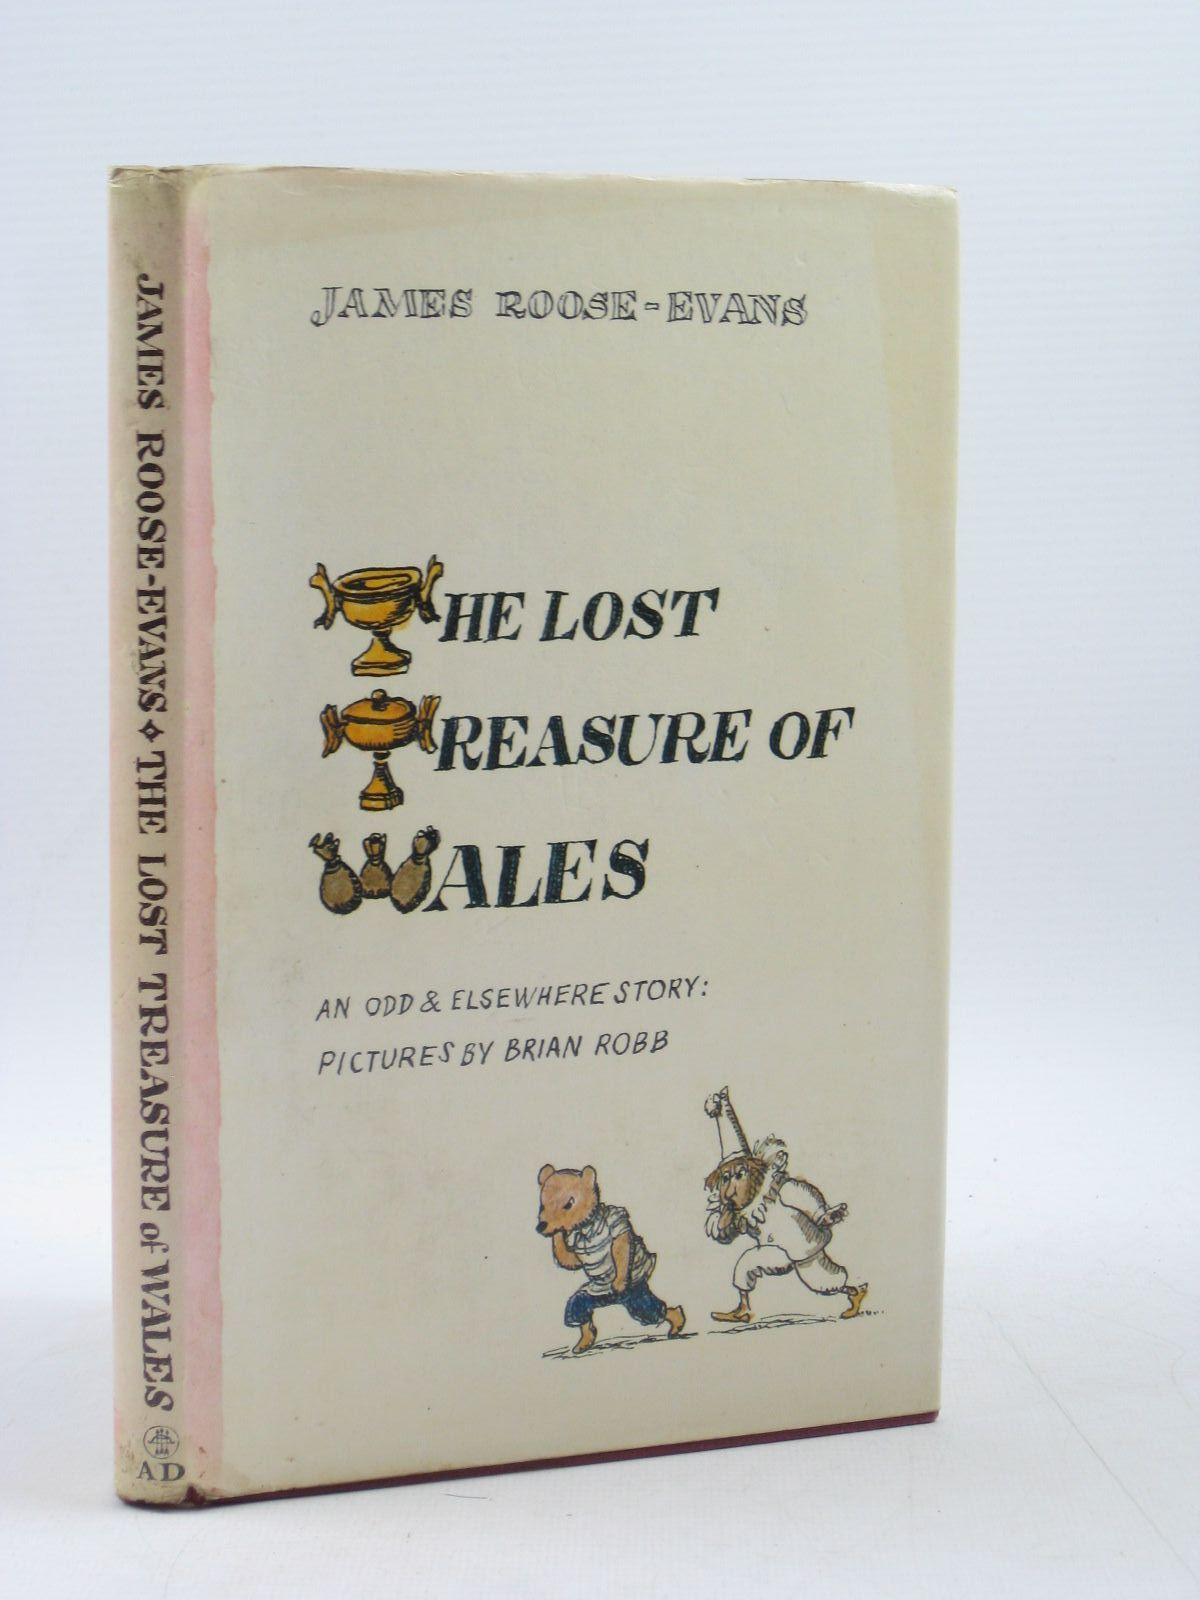 Photo of THE LOST TREASURE OF WALES written by Roose-Evans, James illustrated by Robb, Brian published by Andre Deutsch (STOCK CODE: 1313517)  for sale by Stella & Rose's Books